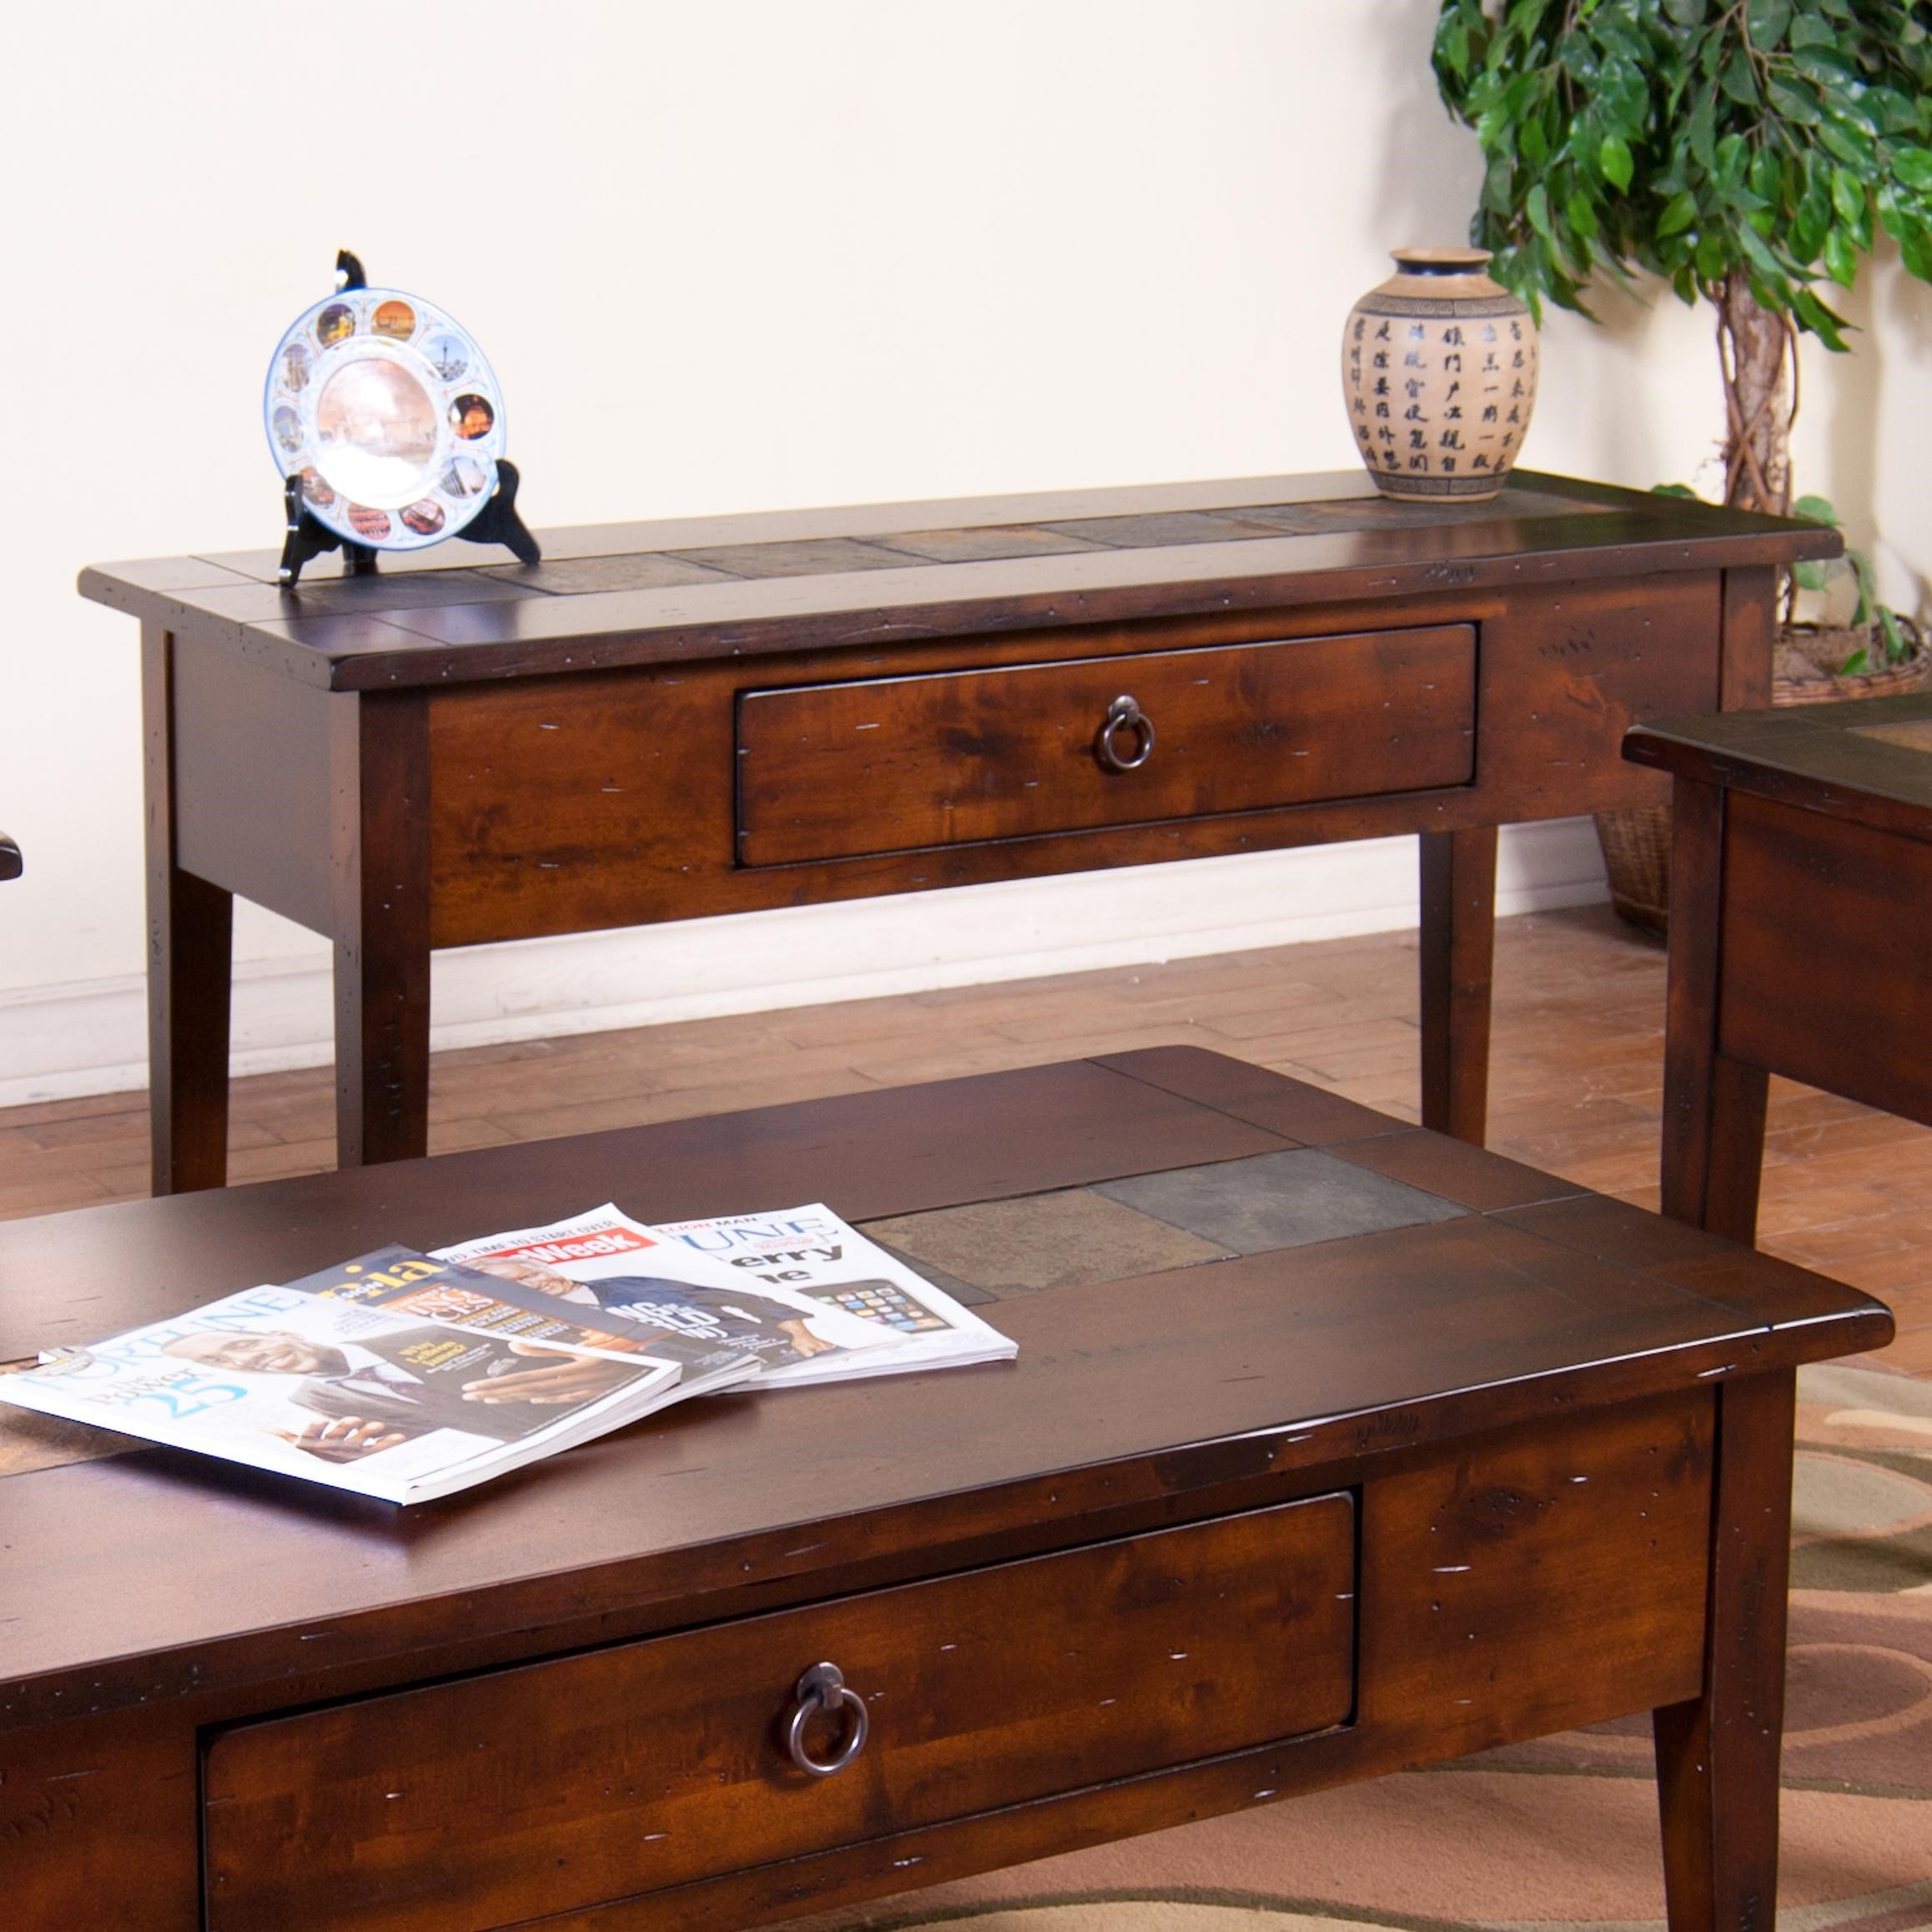 Sunny Designs Santa Fe Sofa/Console Table With Slate Tiles And Utility  Drawer